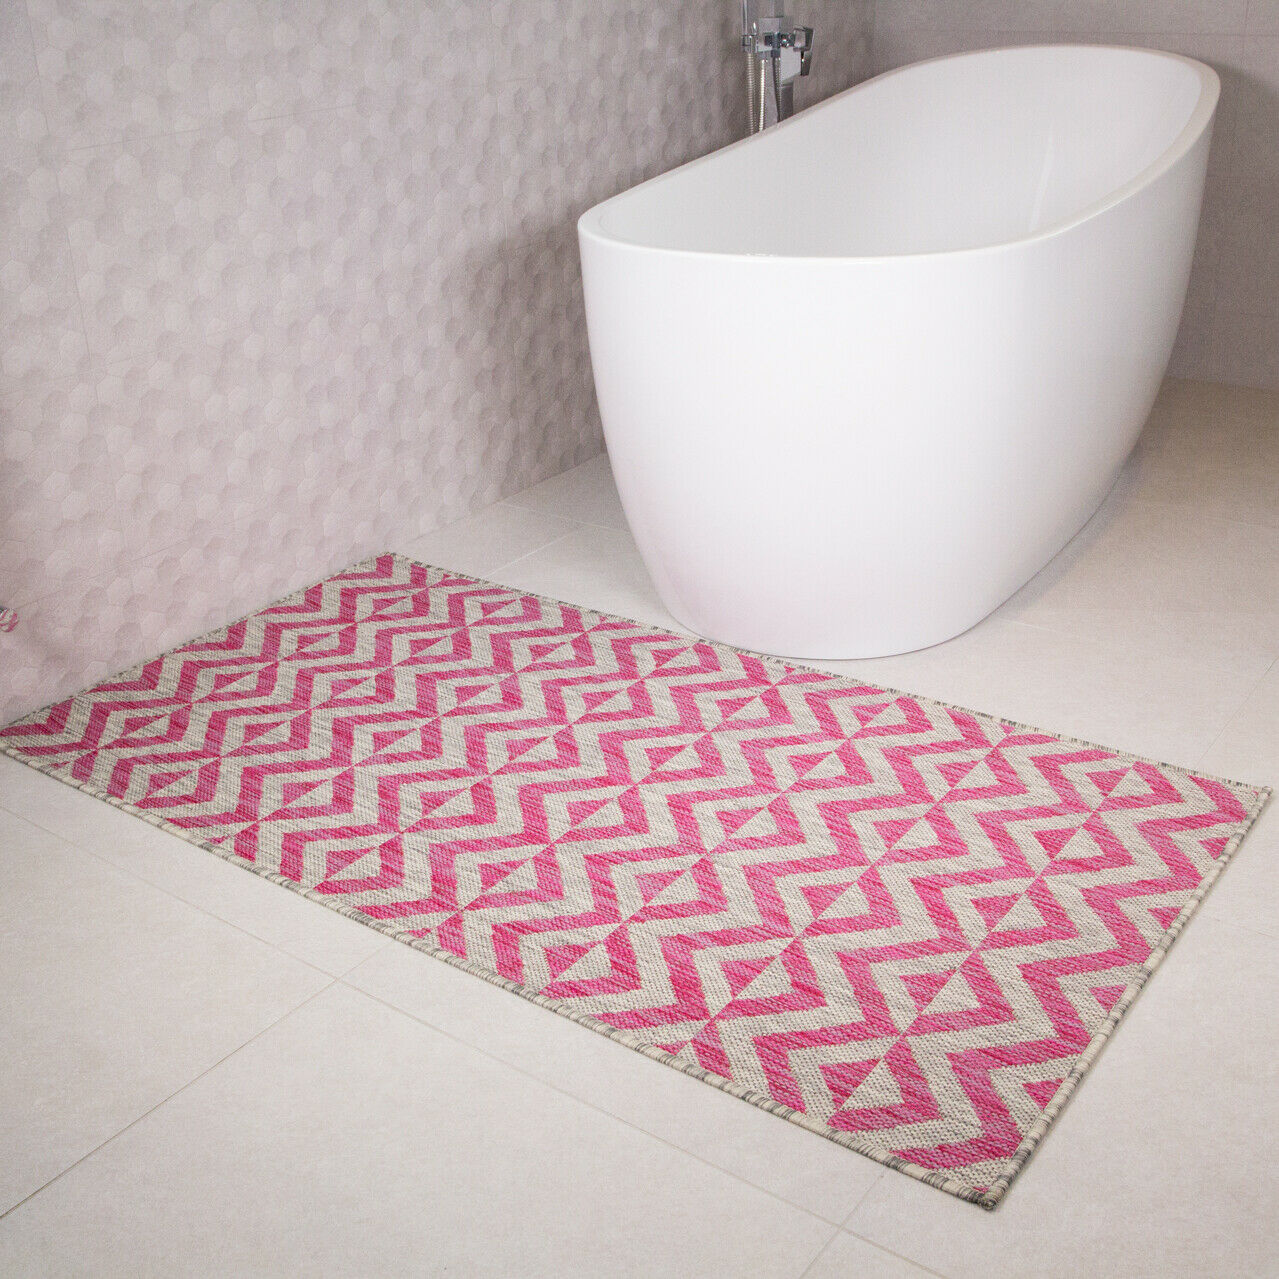 7080aa6bbd Details about Cosy Fluffy Thick Blush Pink Shaggy Rugs Rose Quartz Coral  Cheap Geometric Rug